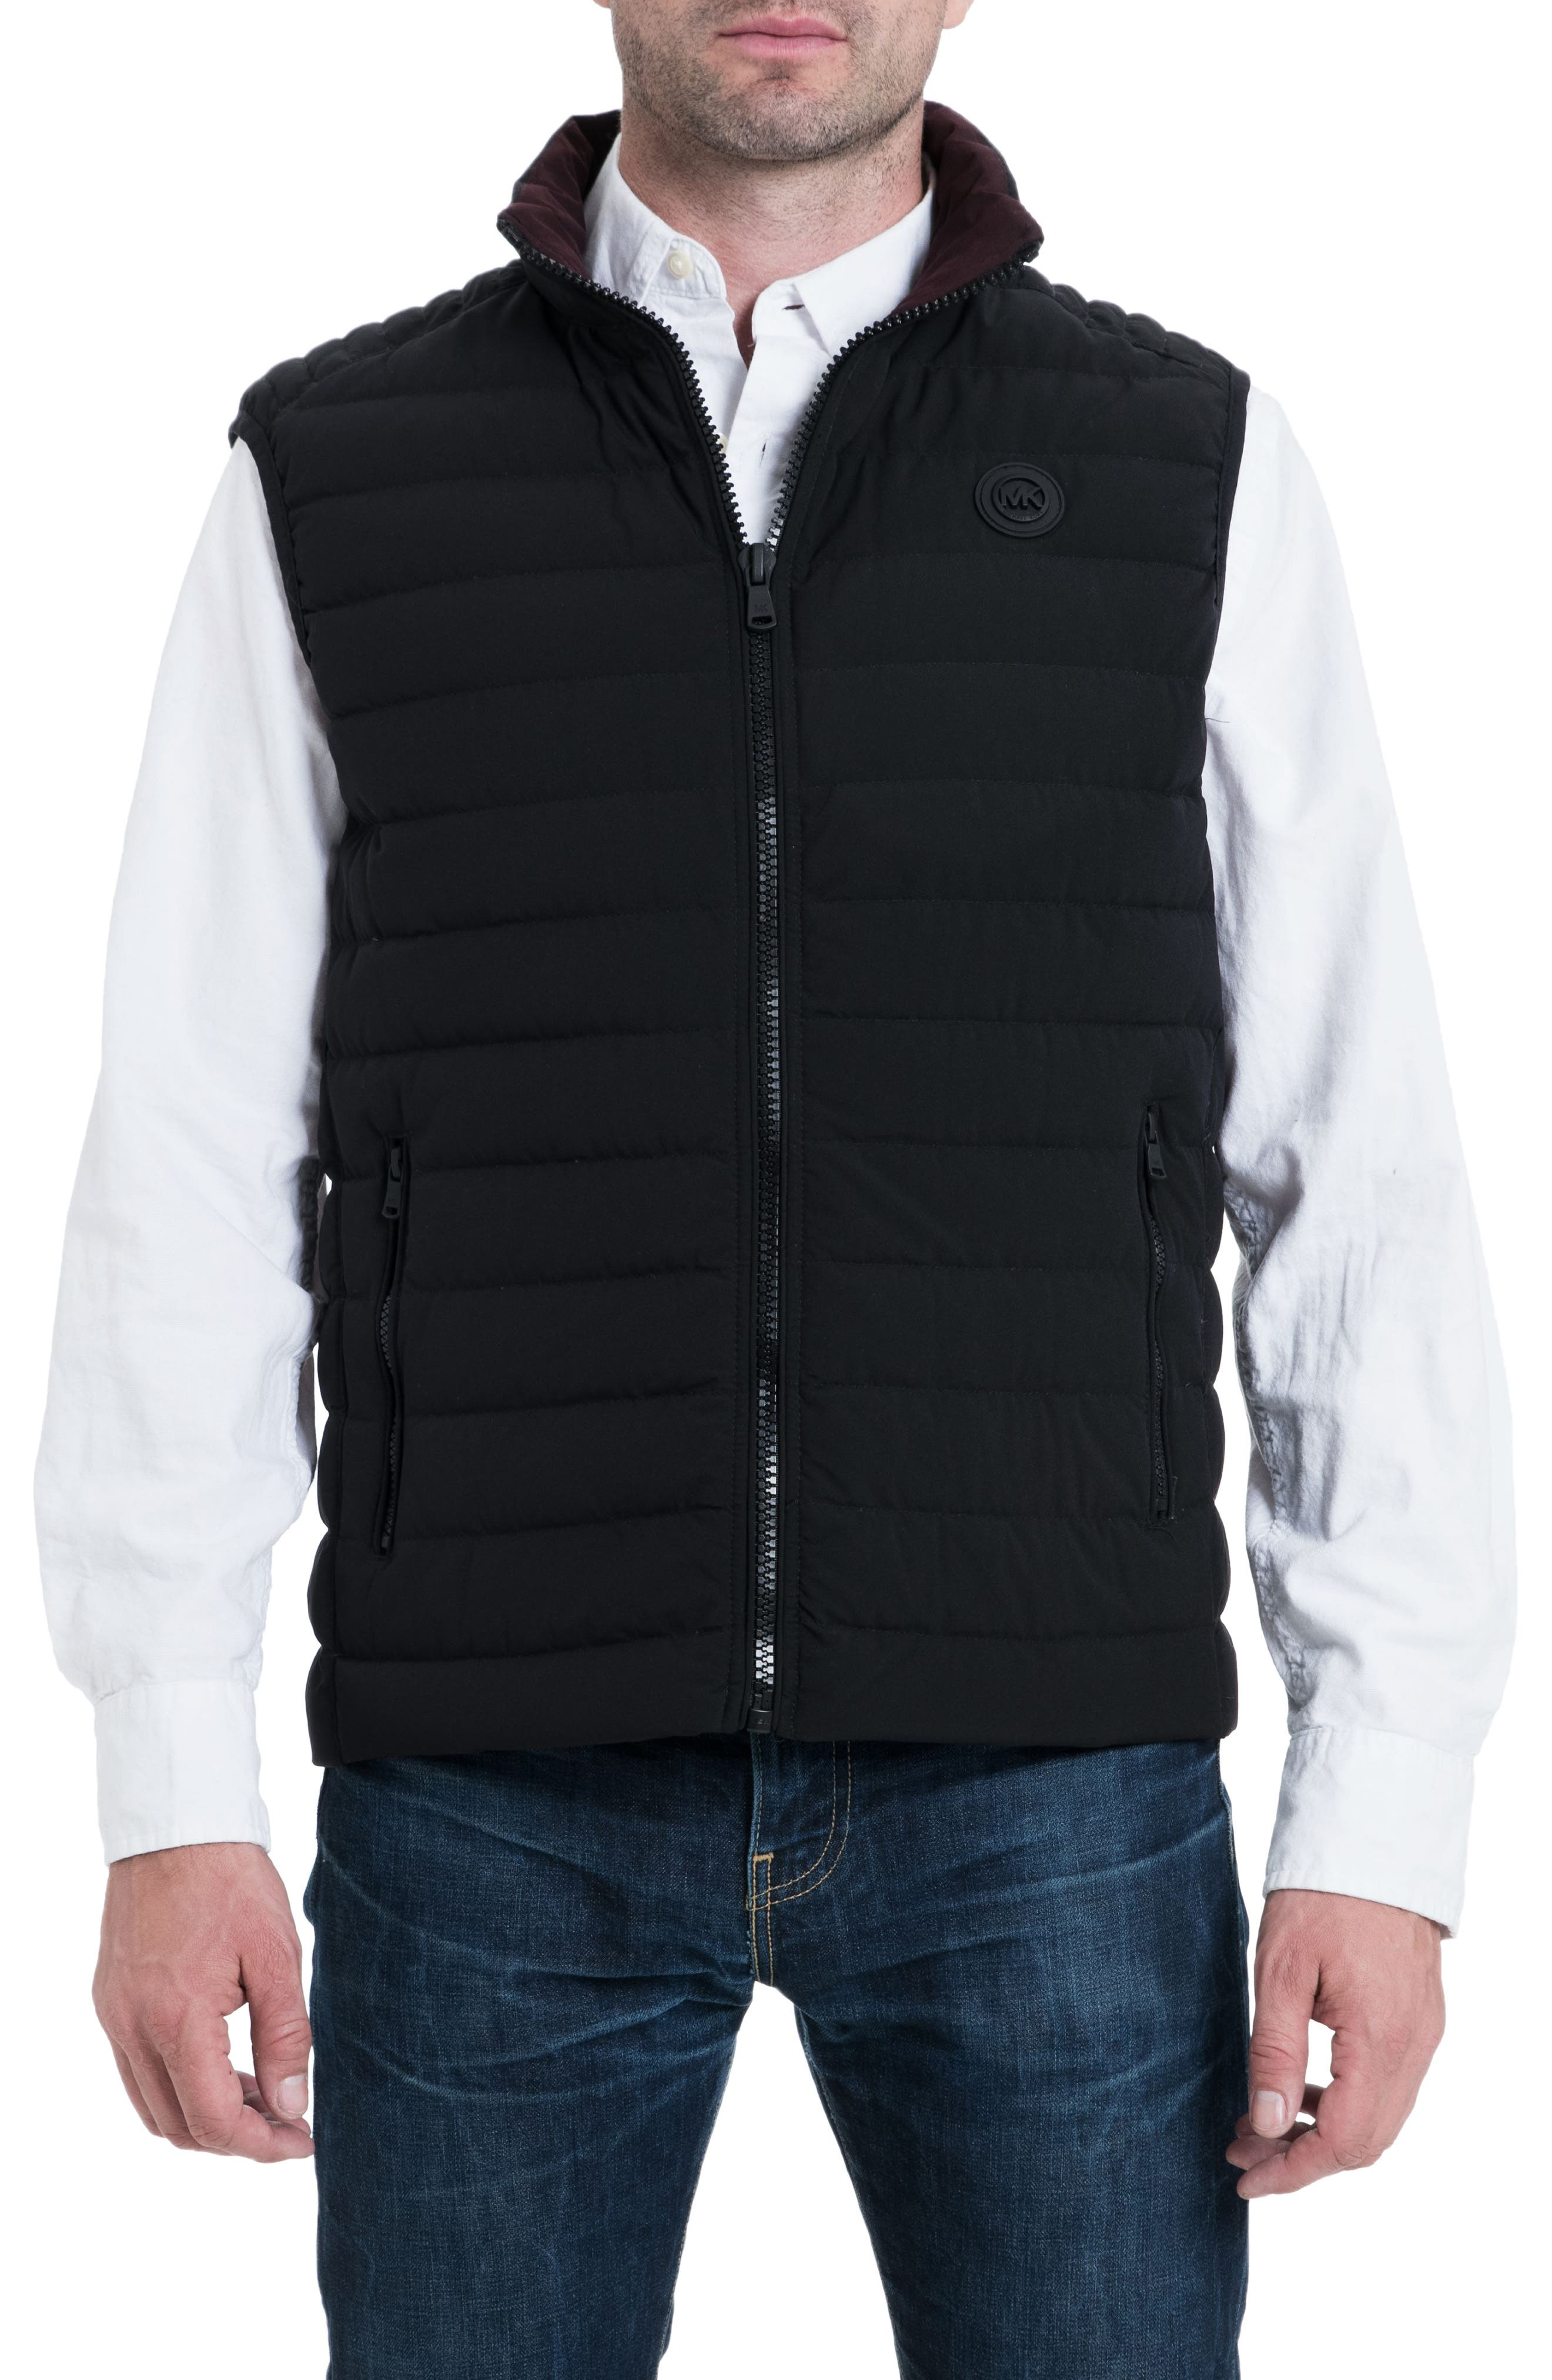 Marshall Vest,                         Main,                         color, BLACK